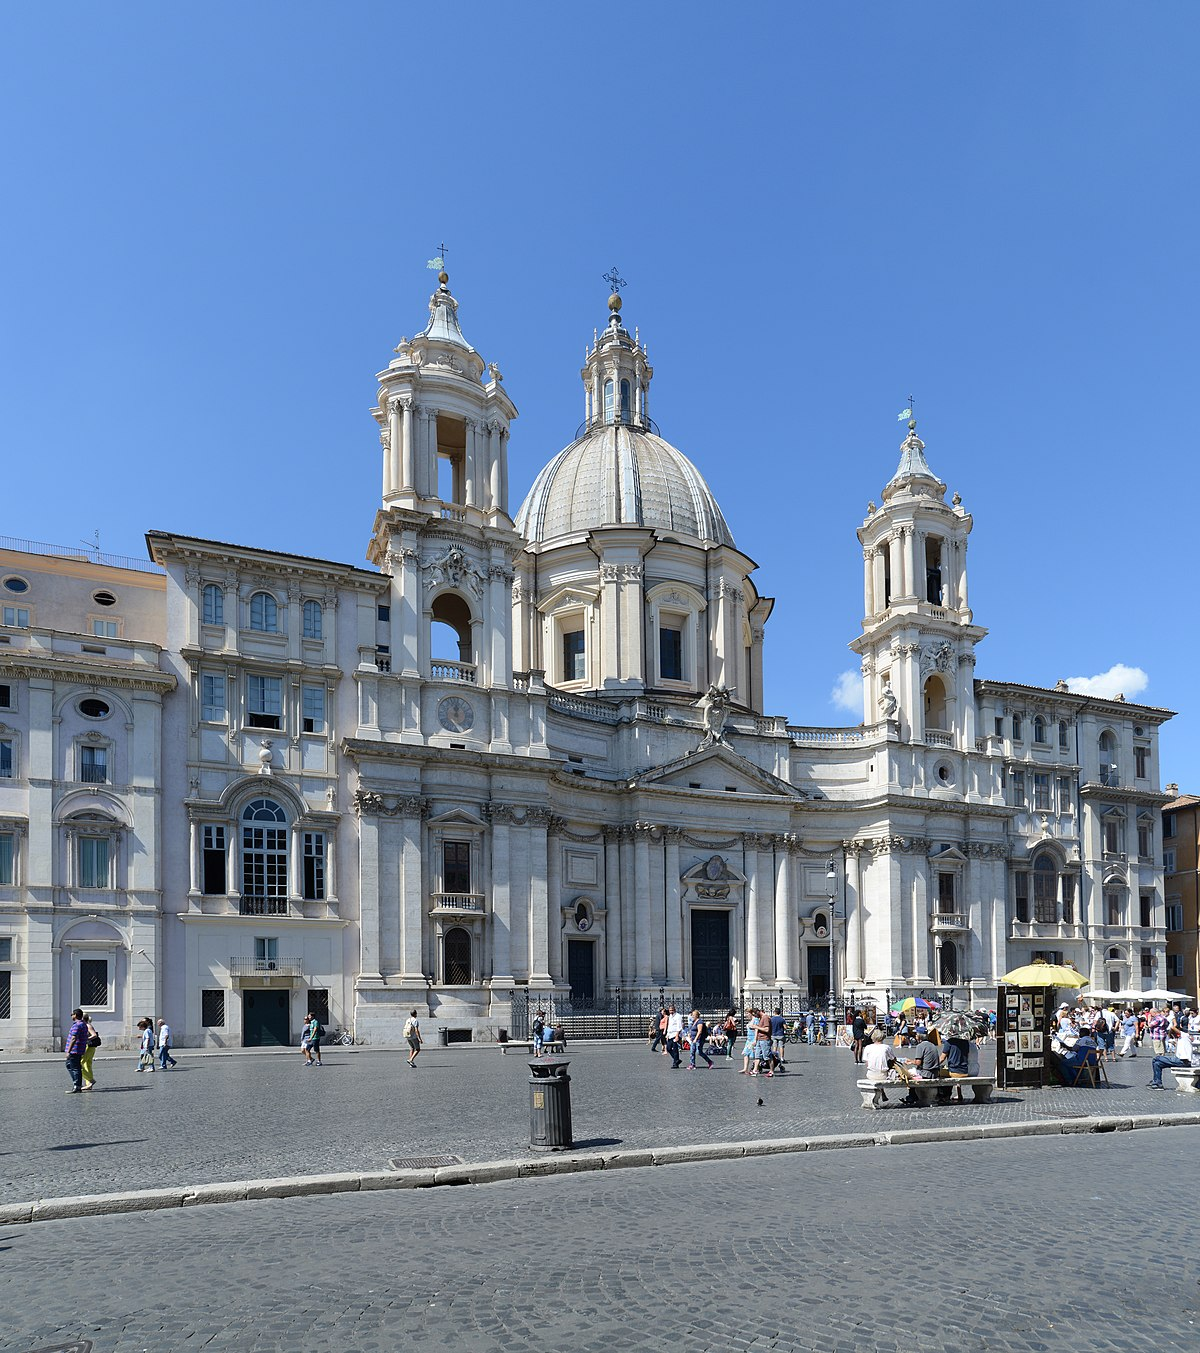 Sant'Agnese in Agone - Wikipedia